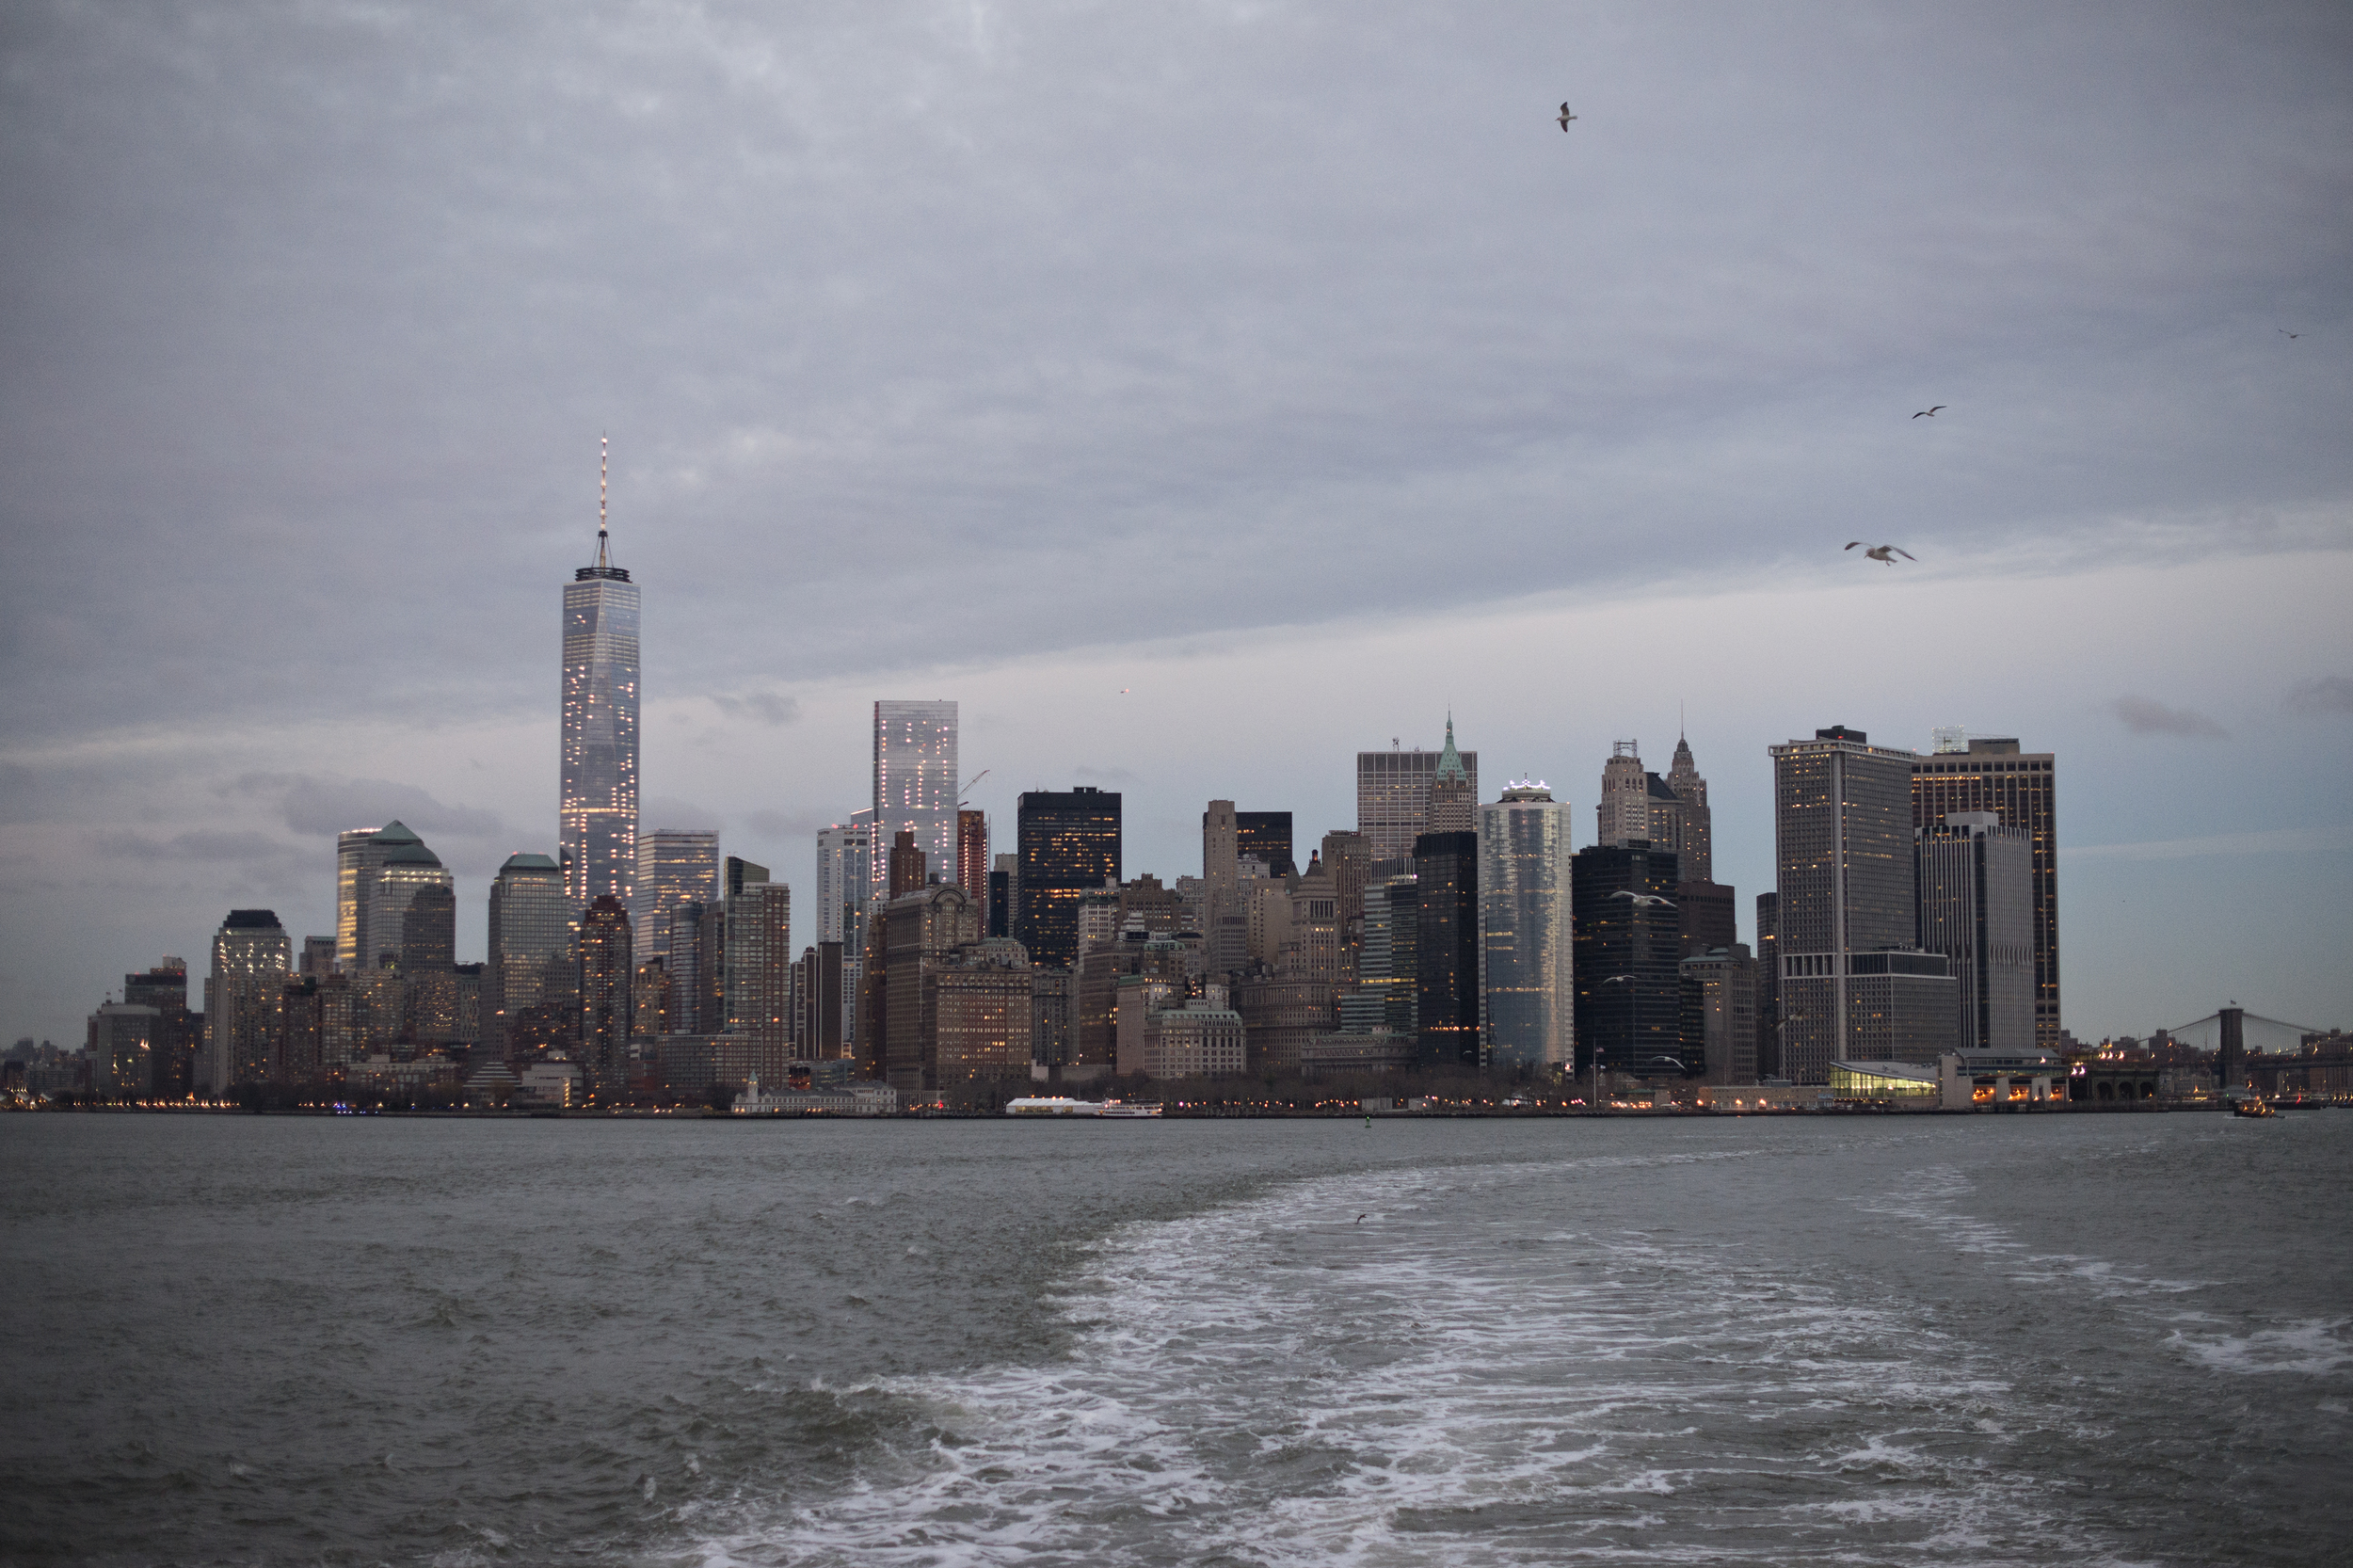 The New York skyline from the Staten Island Ferry